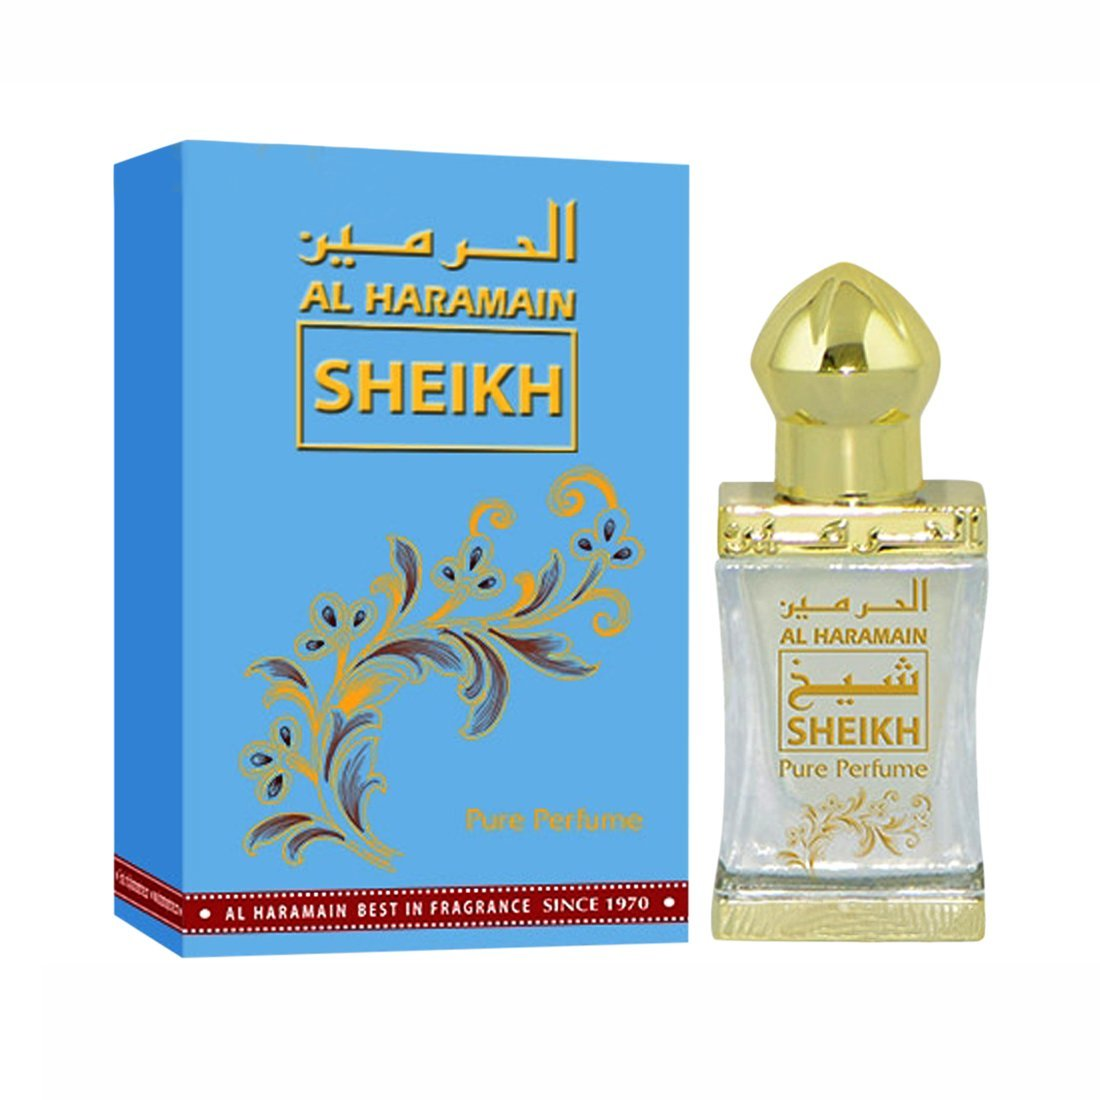 Al Haramain Sheikh Attar - 12 ml